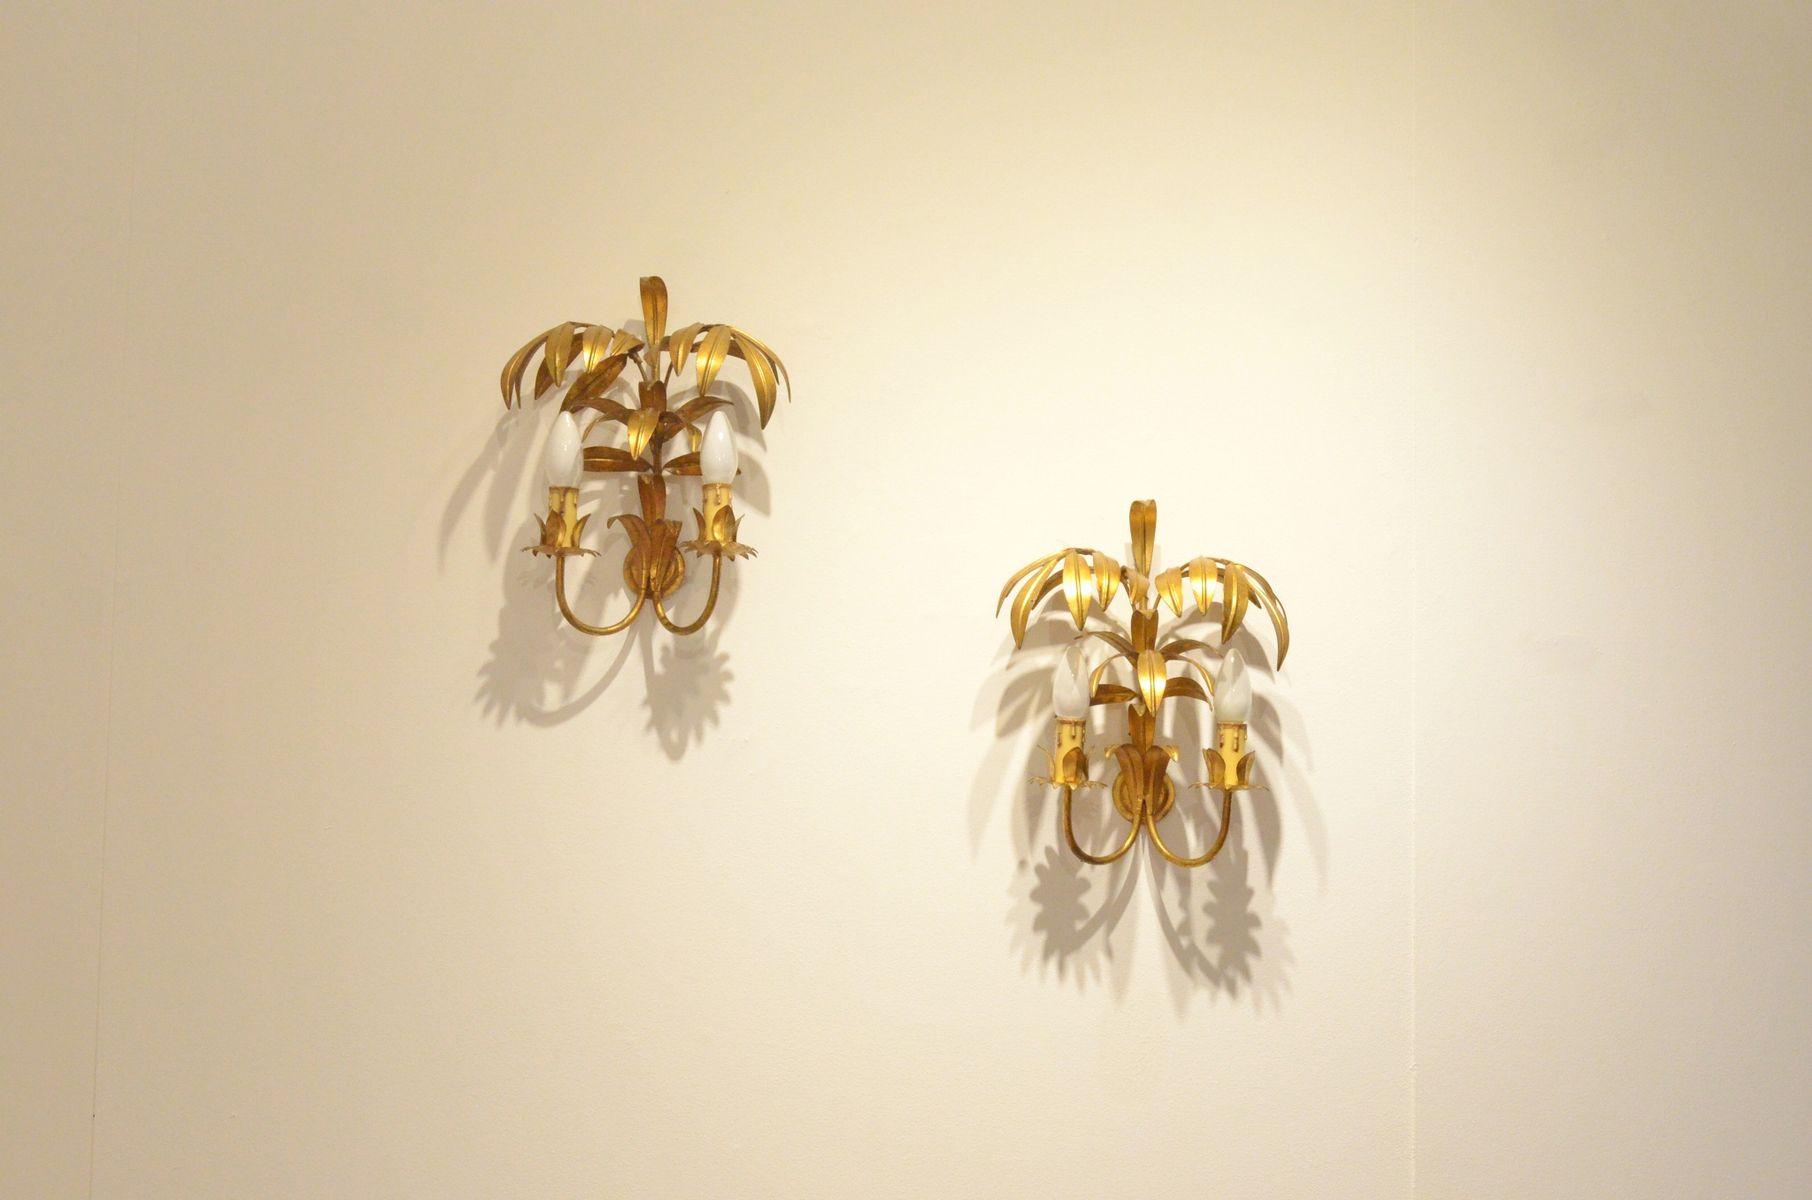 Golden Metal Palm Tree Wall Sconces, 1950s, Set of 2 for sale at Pamono